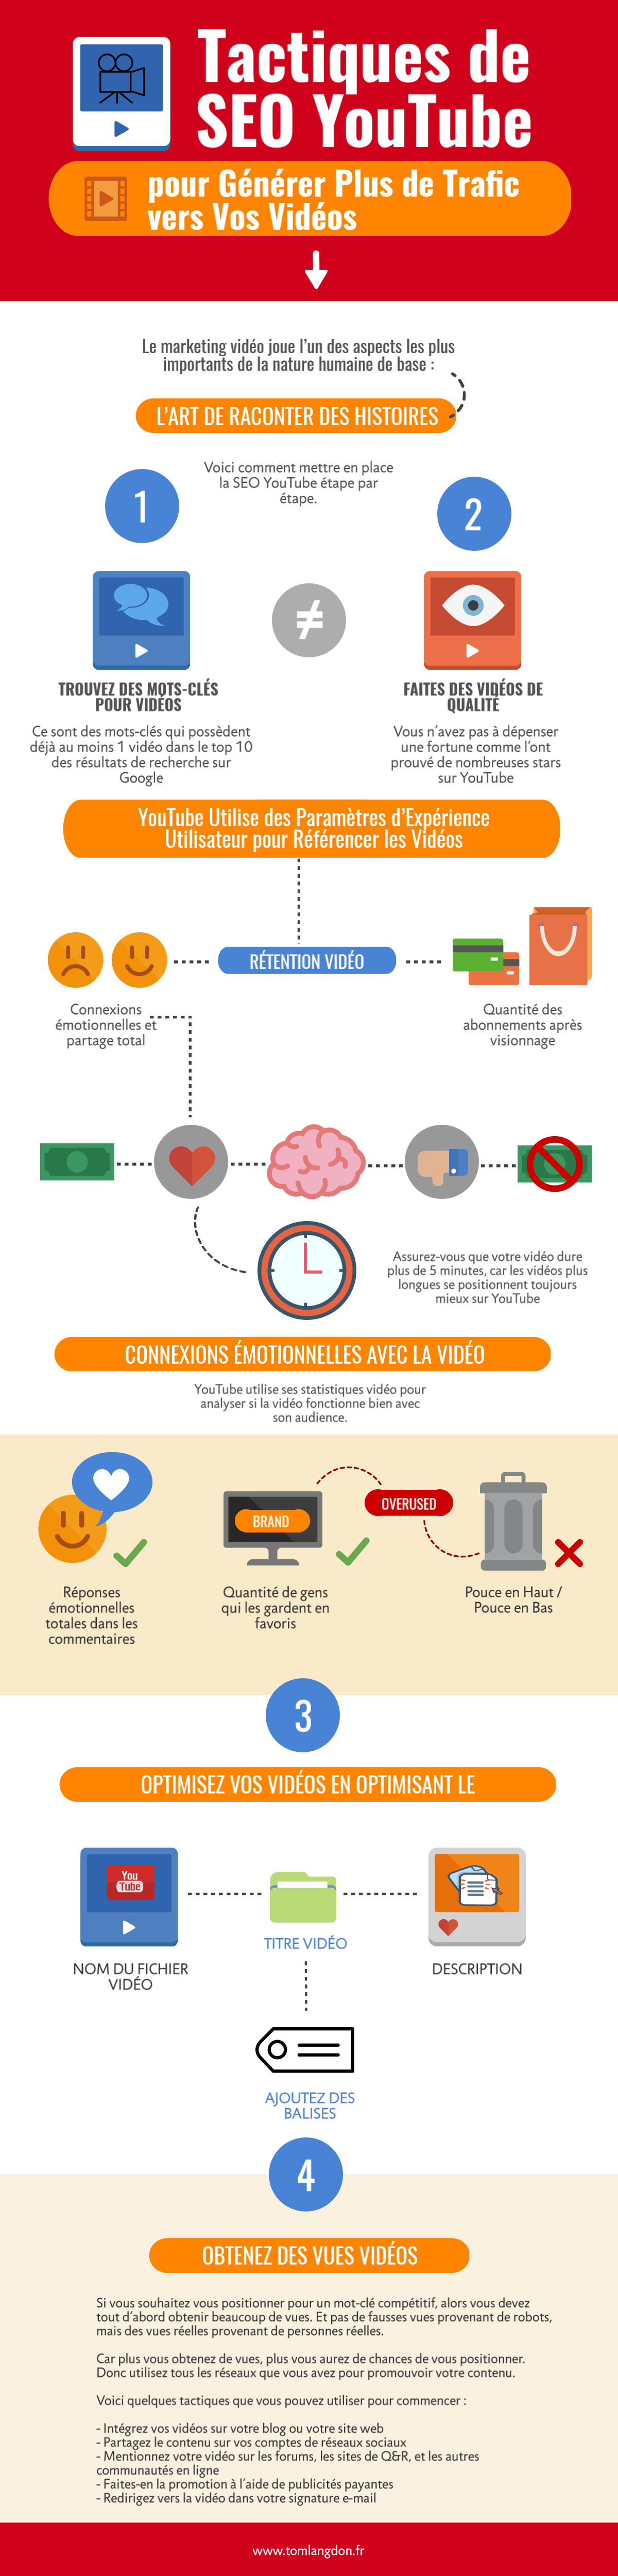 infographie-seo-youtube